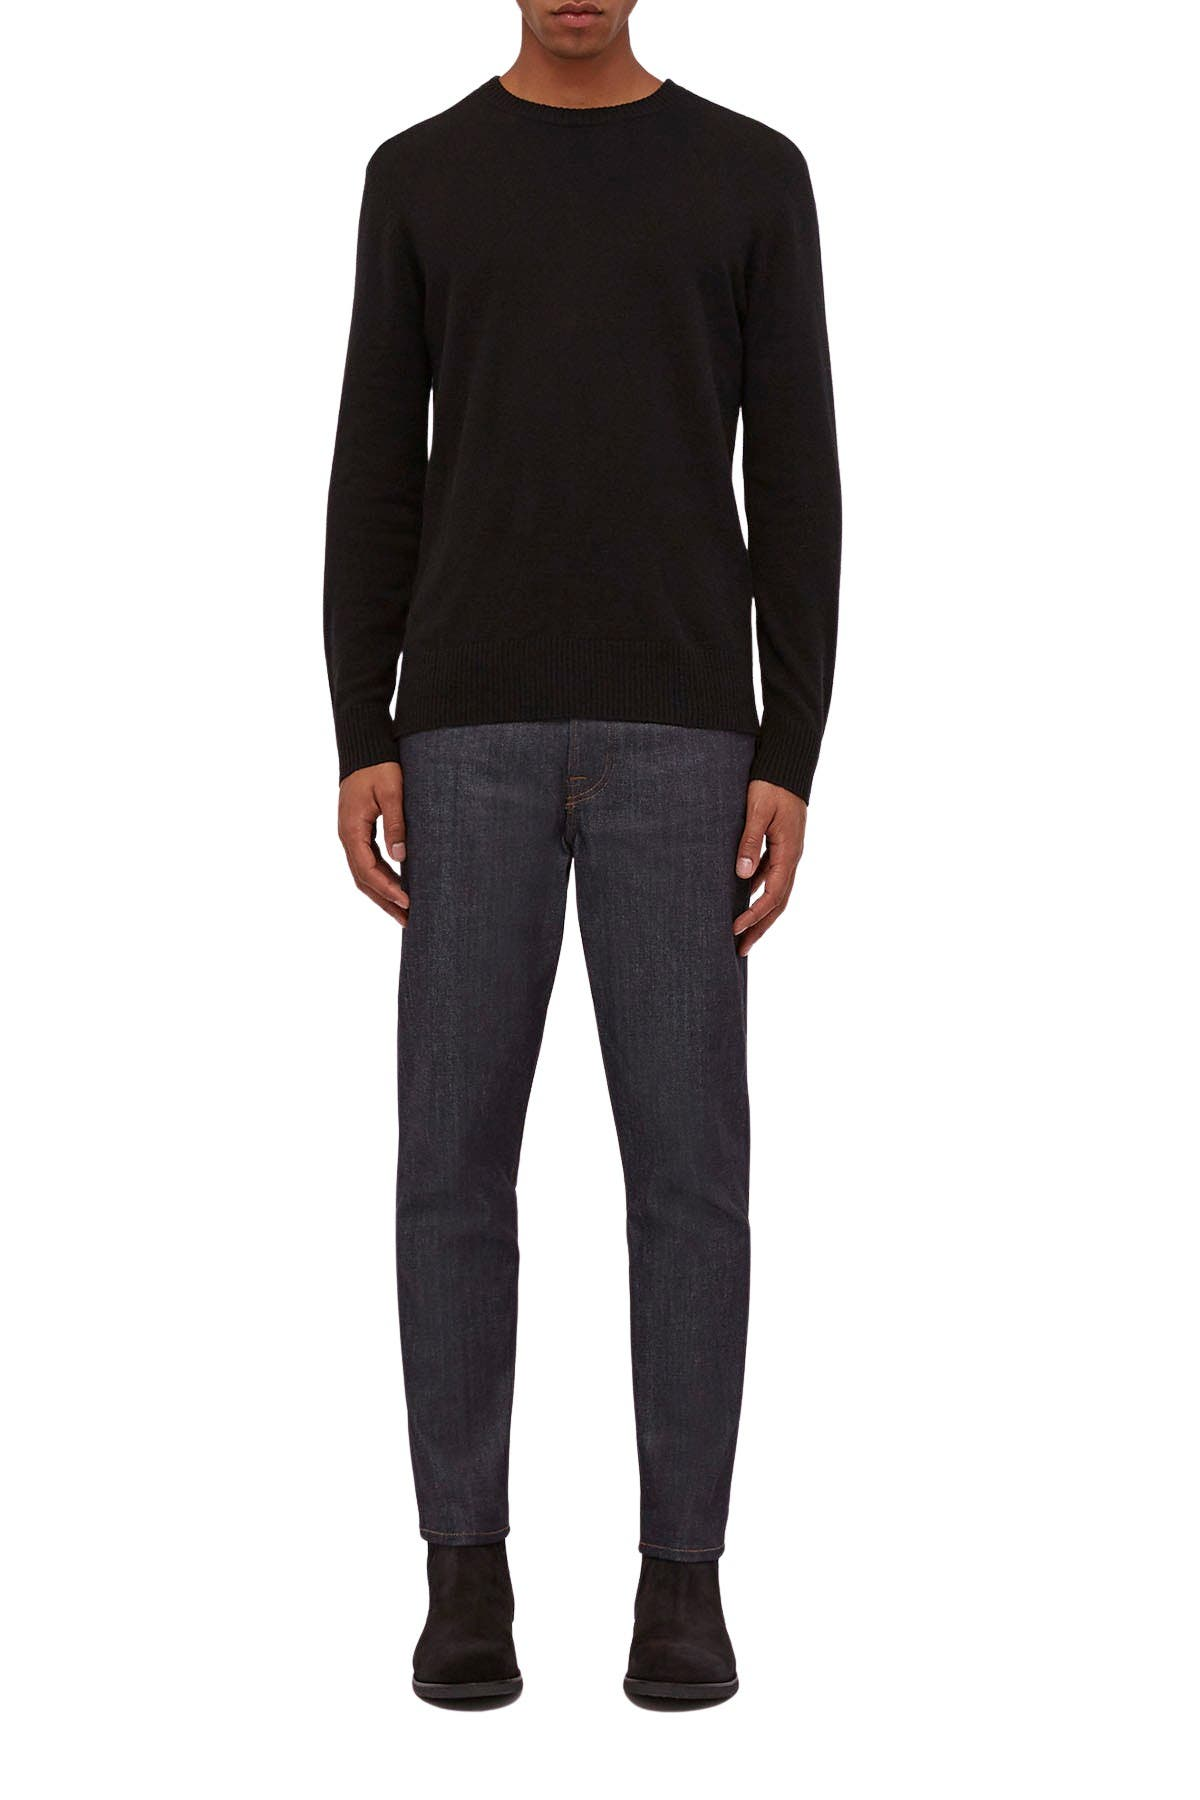 Image of BALDWIN Leader Wool & Cashmere Crew Neck Sweater